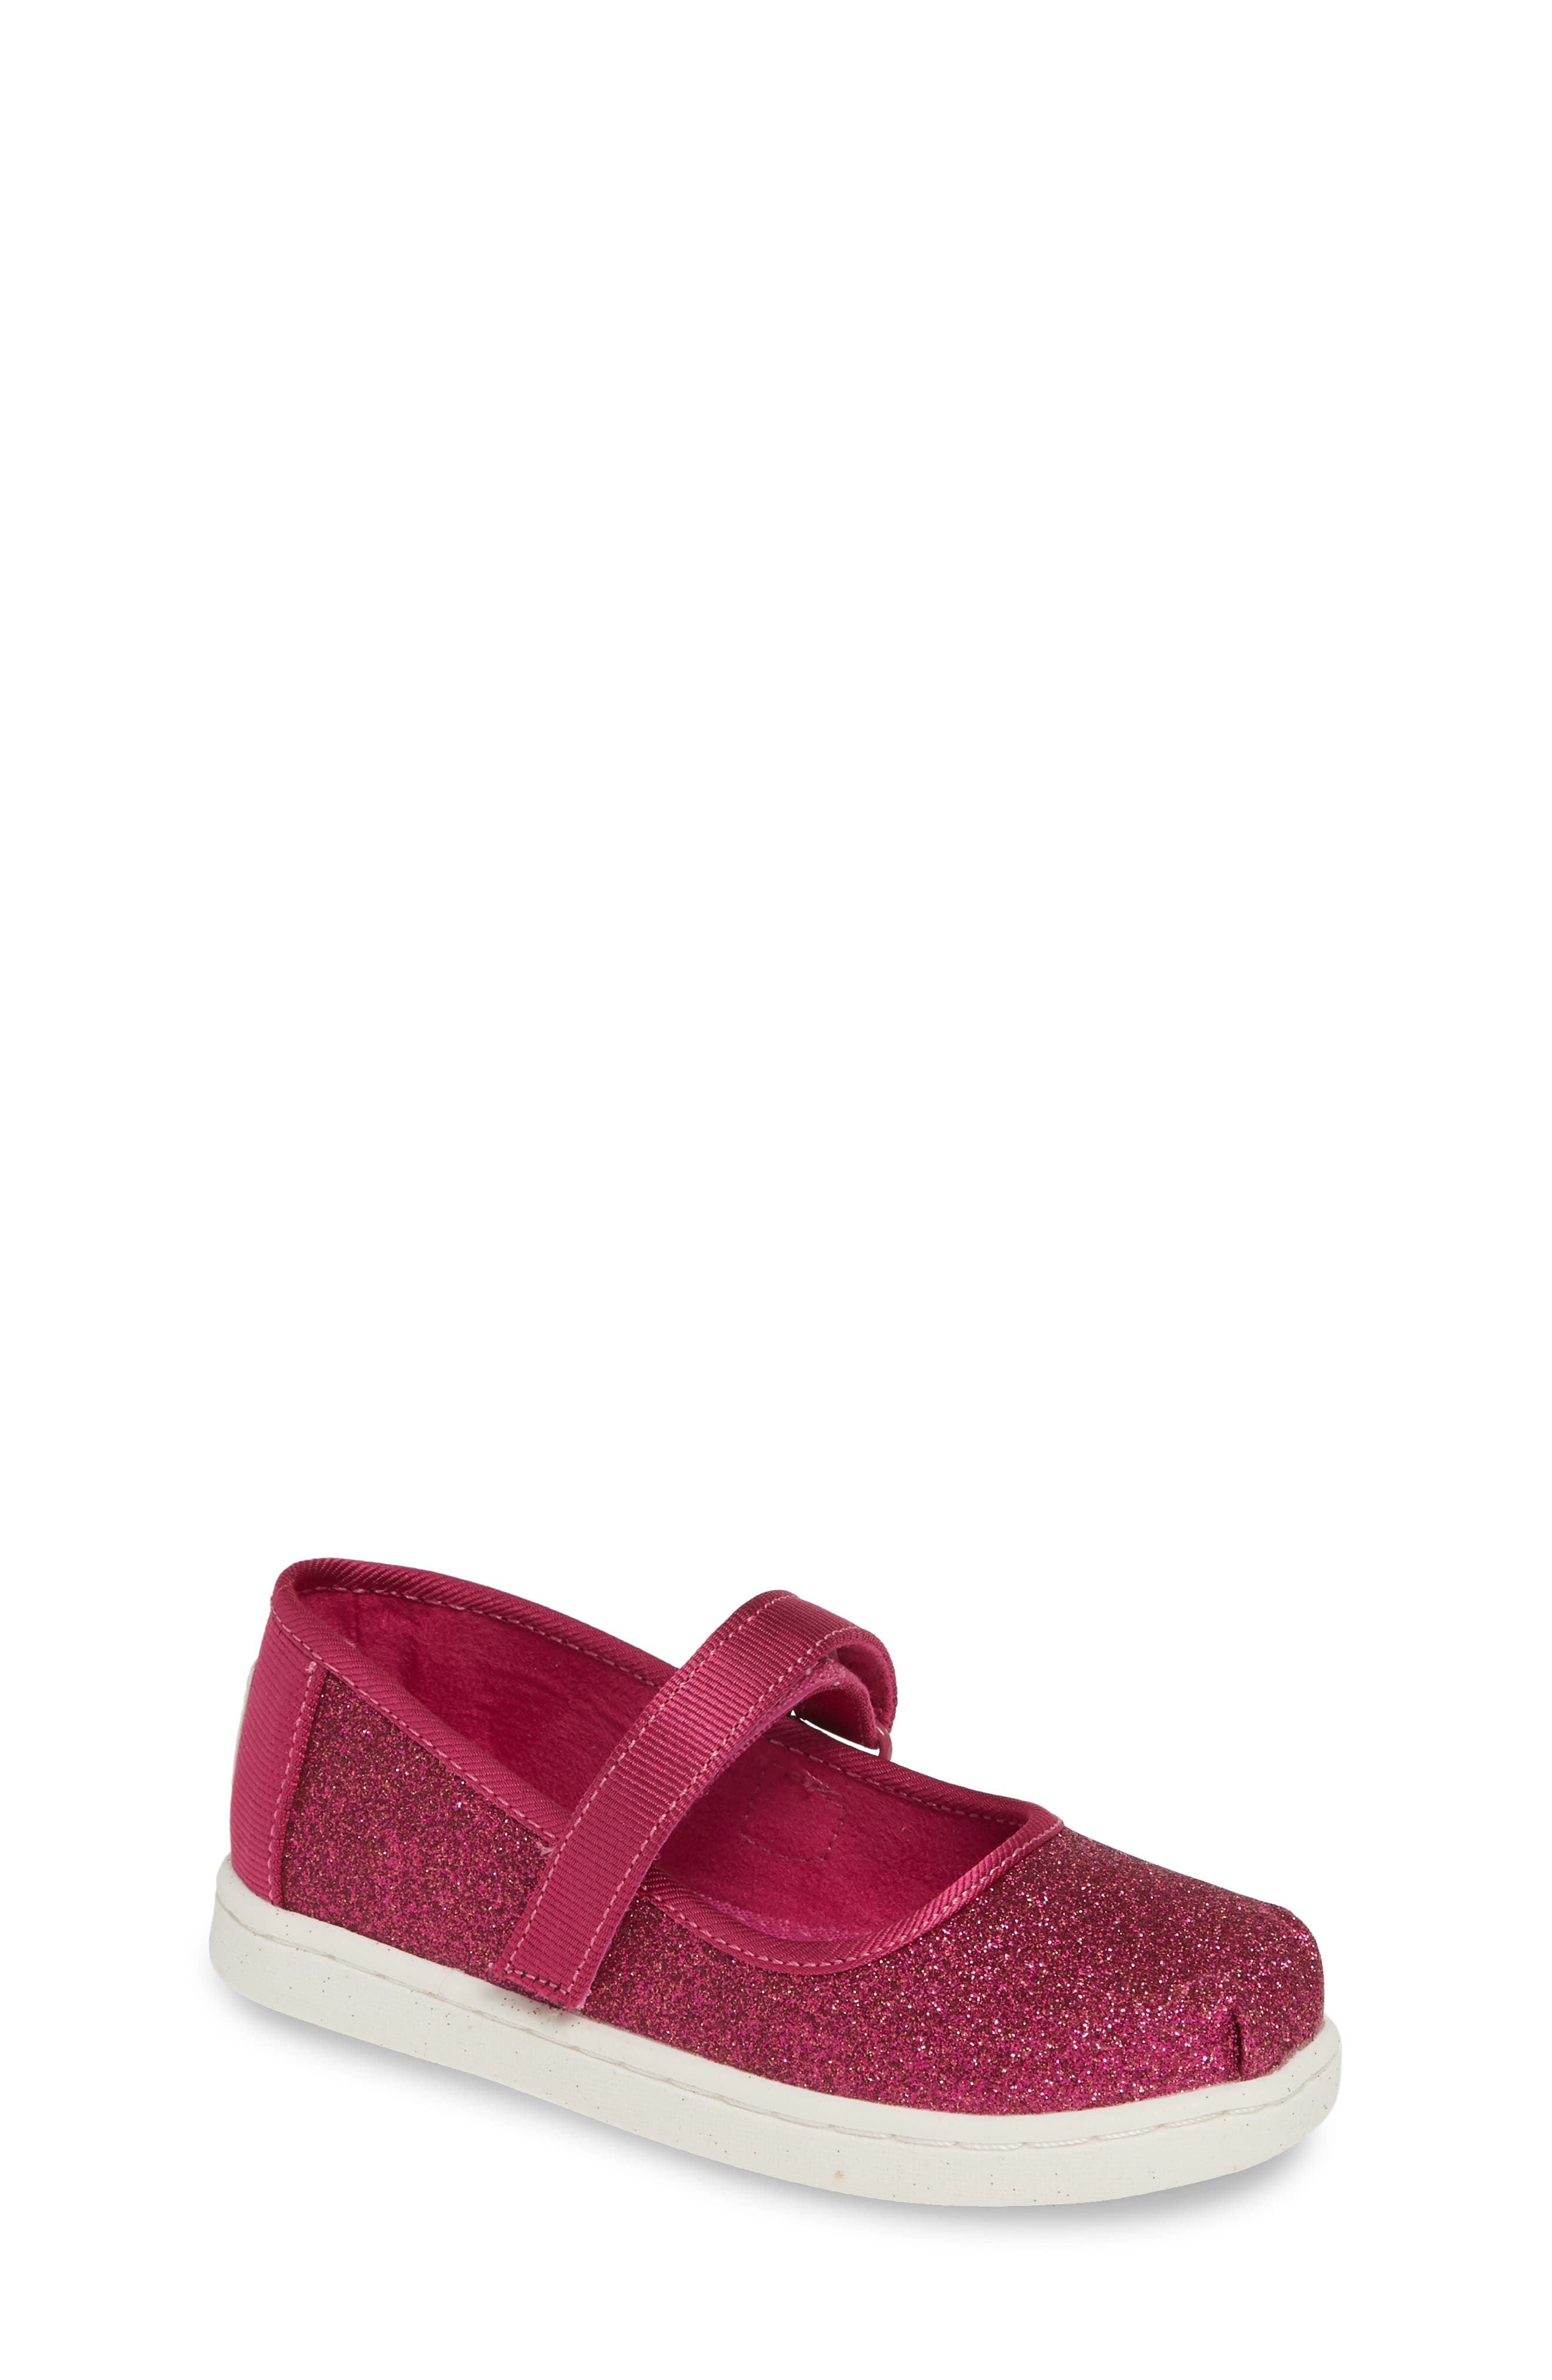 TOMS, Mary Jane Sneaker, Main thumbnail 1, color, PINK